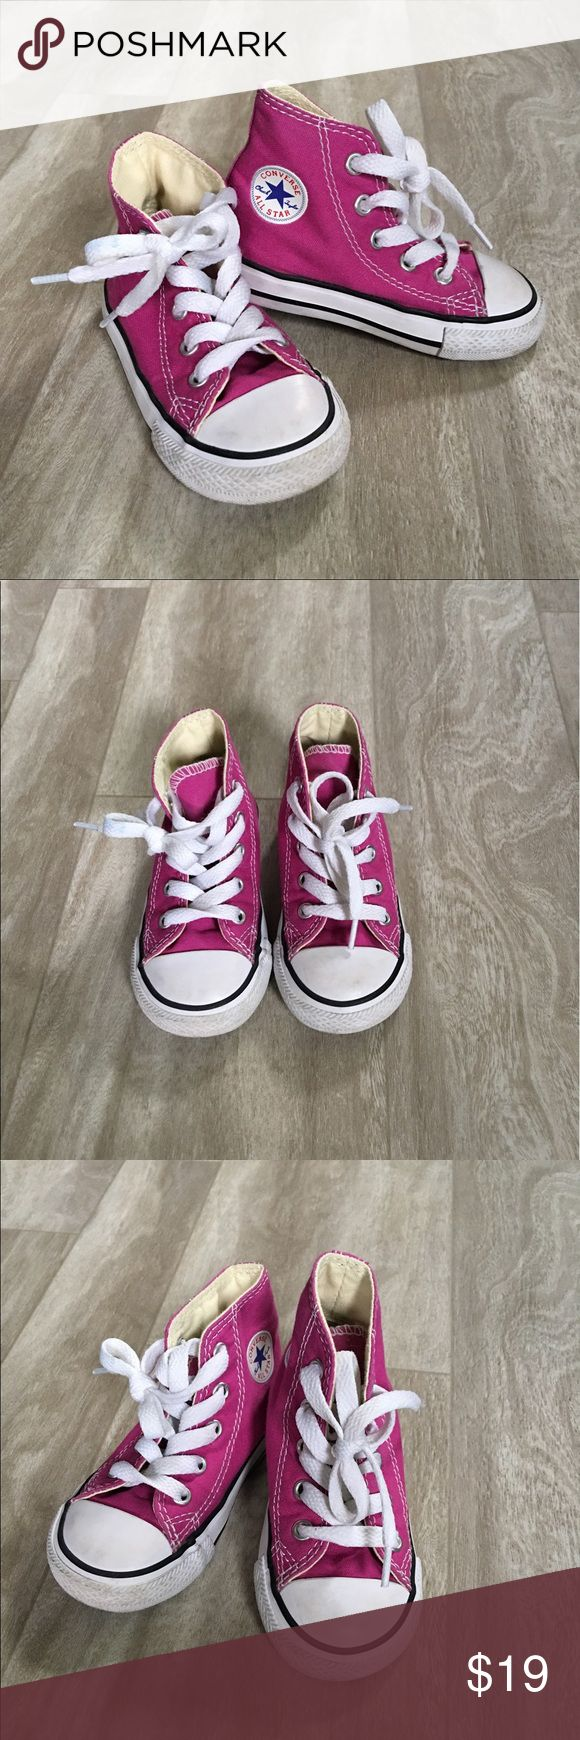 Toddler girls Converse high tops pink size 6 Toddler girls pink Converse All Star high top lace ups. Size 6. These have been worn 3 or 4 times but are basically new. I'll make sure they are wiped clean before sent. Thanks for looking!  Converse Shoes Sneakers